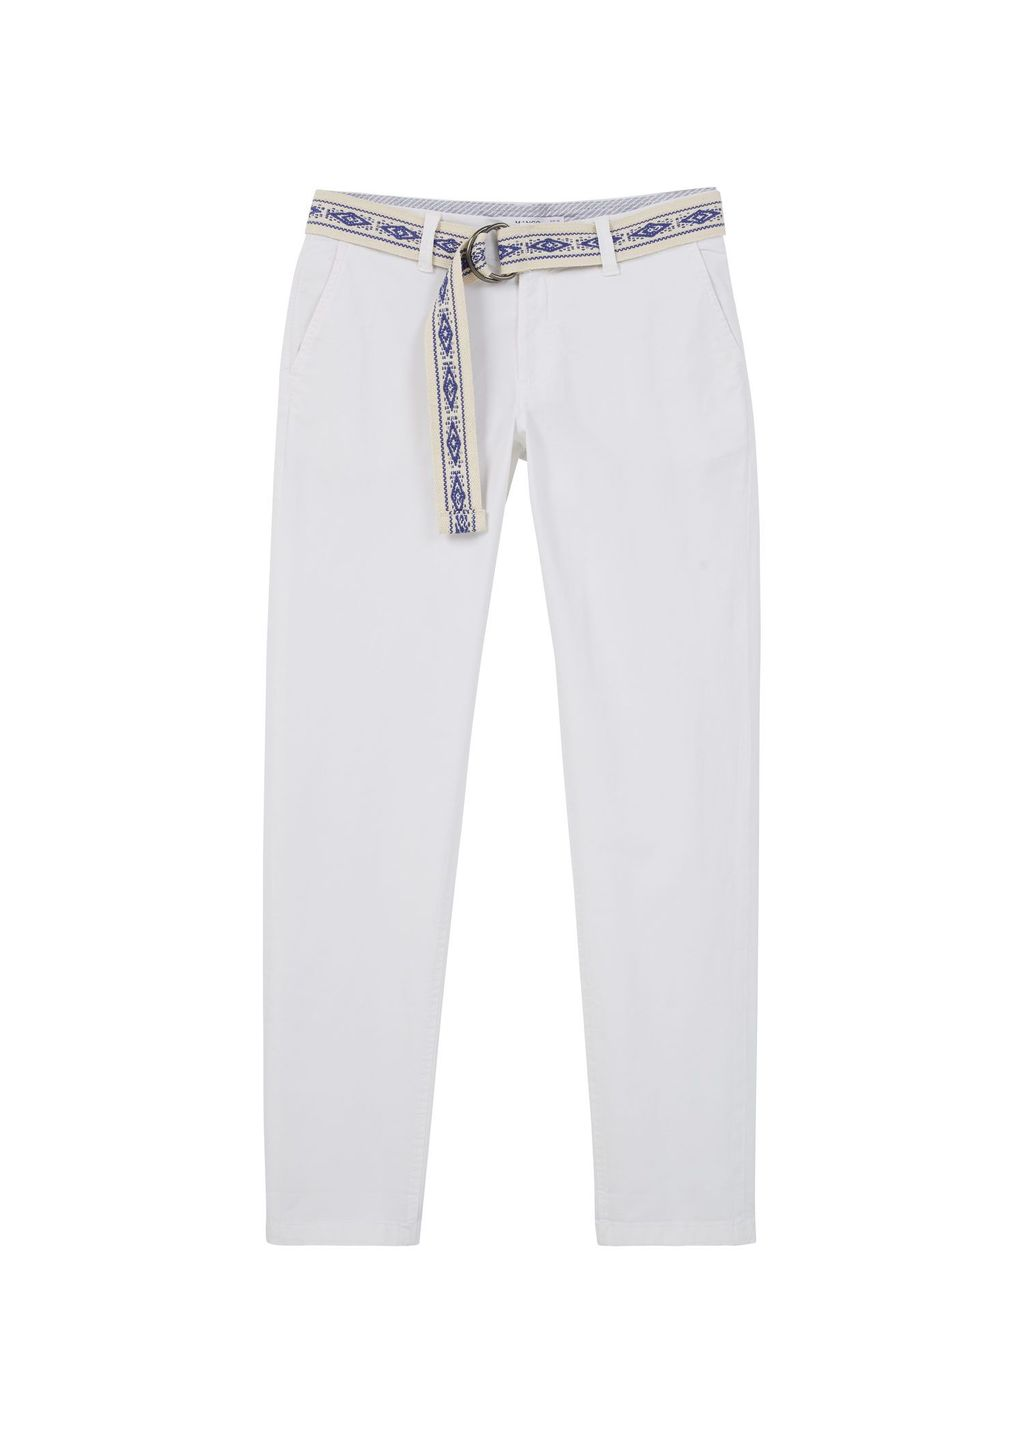 Cotton Chinos, White - length: standard; pattern: plain; waist detail: belted waist/tie at waist/drawstring; waist: mid/regular rise; predominant colour: white; occasions: casual, holiday, creative work; style: chino; fibres: cotton - stretch; texture group: cotton feel fabrics; fit: straight leg; pattern type: fabric; season: s/s 2016; wardrobe: basic